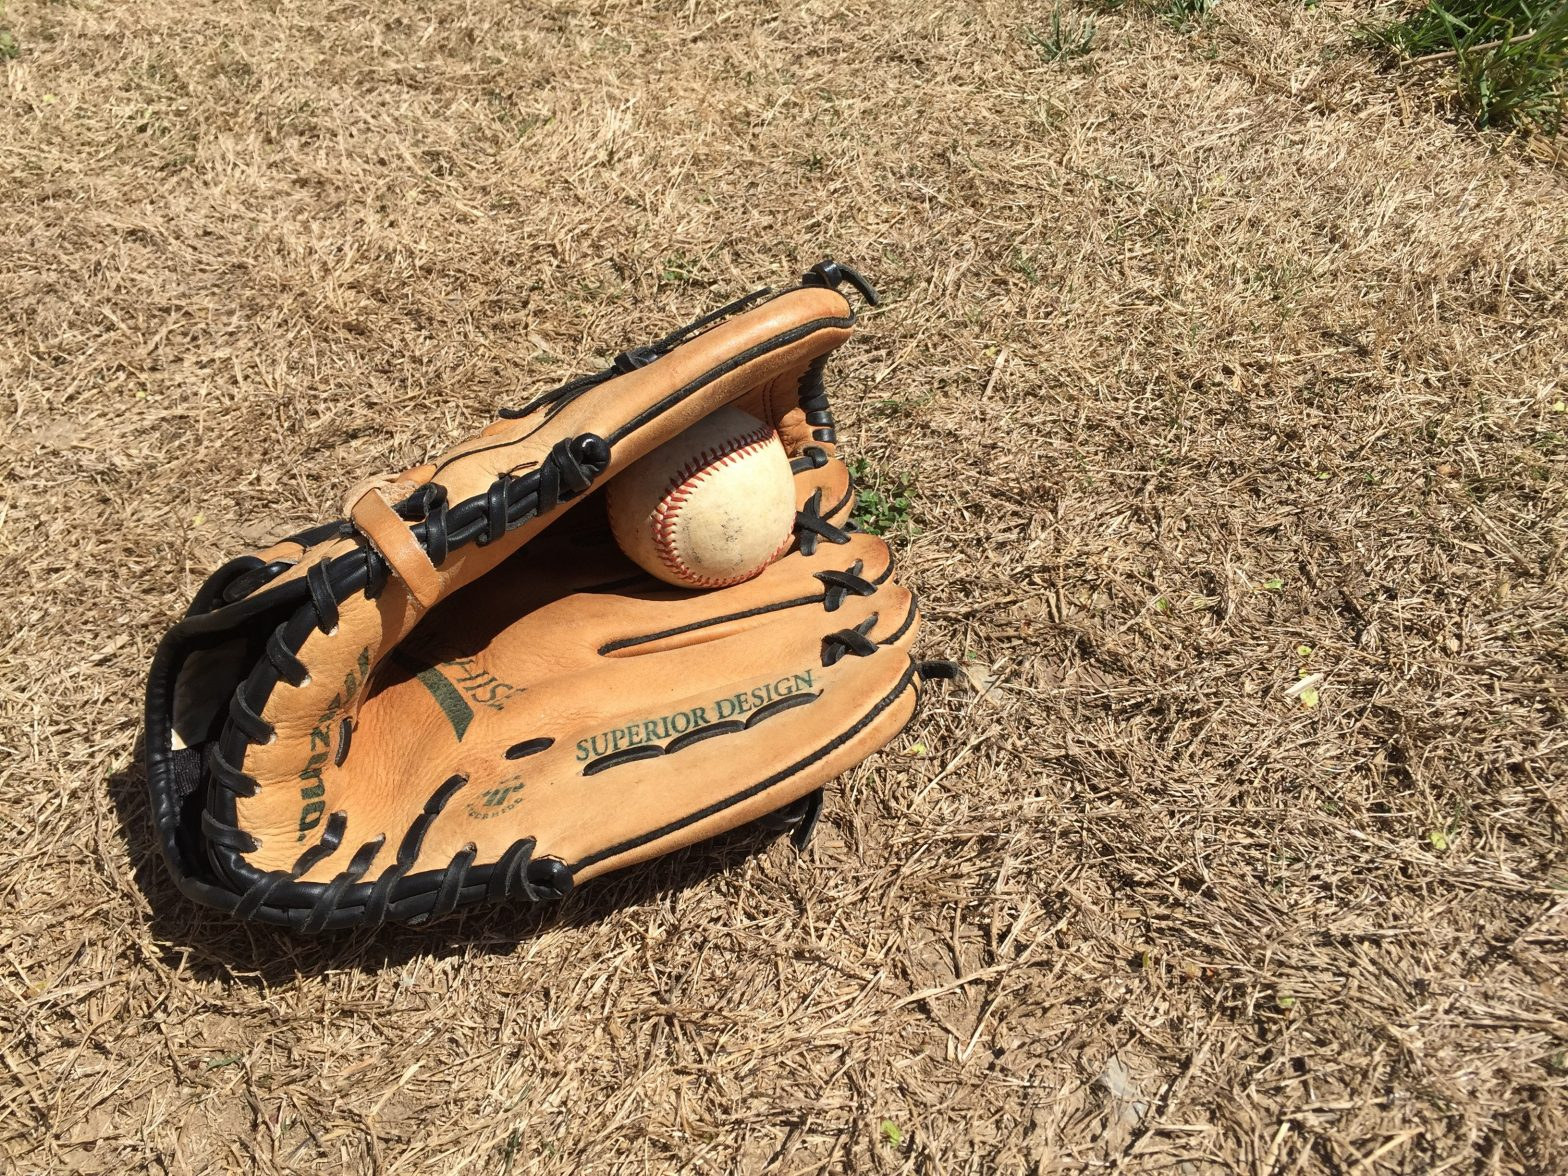 A baseball glove holding a ball and lying on the ground.